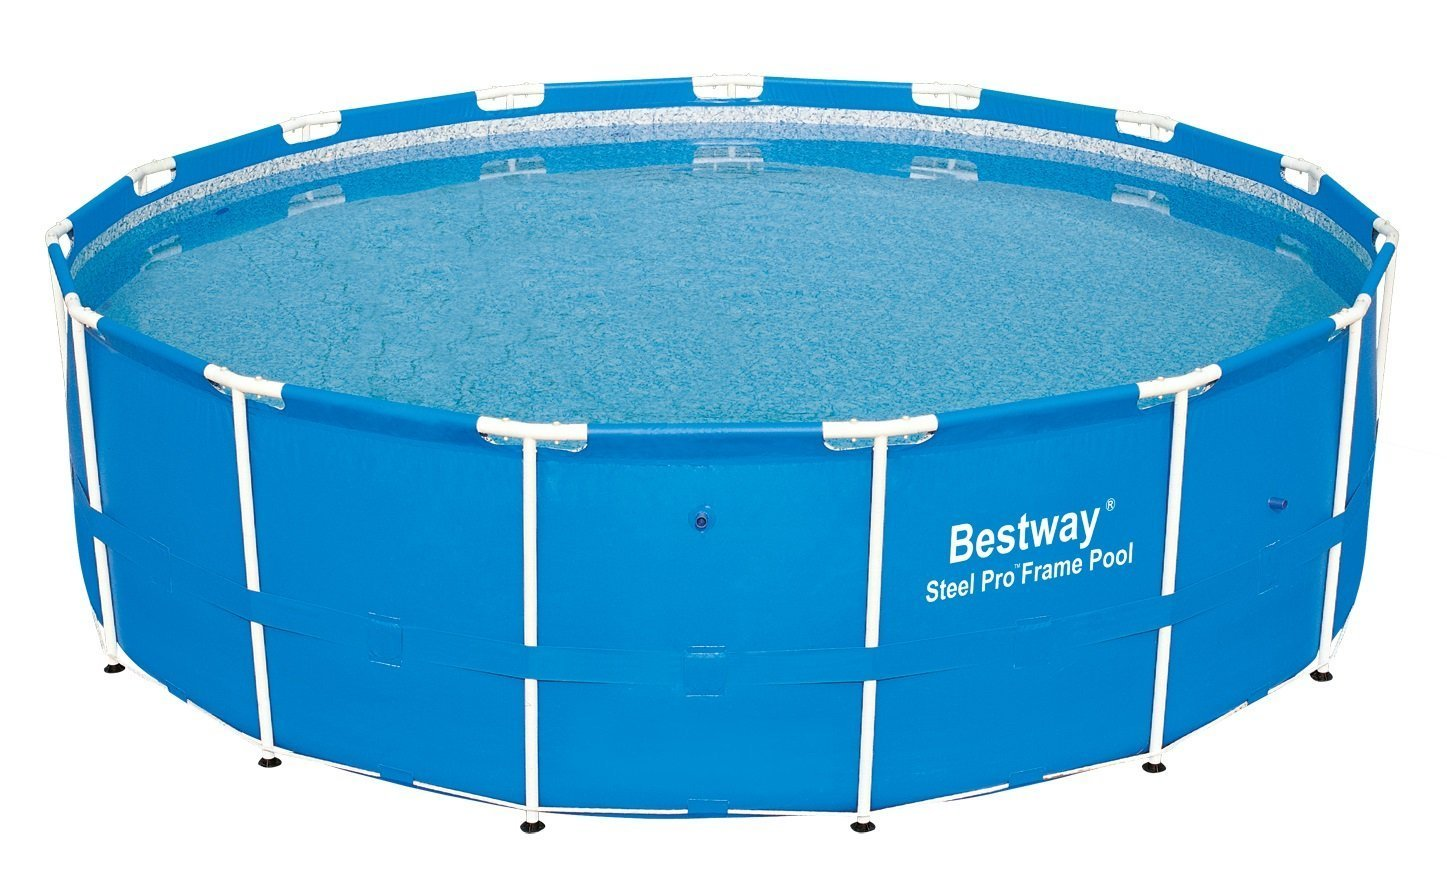 Intex Vs Bestway Review Bestway Steel Pro Frame Pool Review Best Above Ground Pools